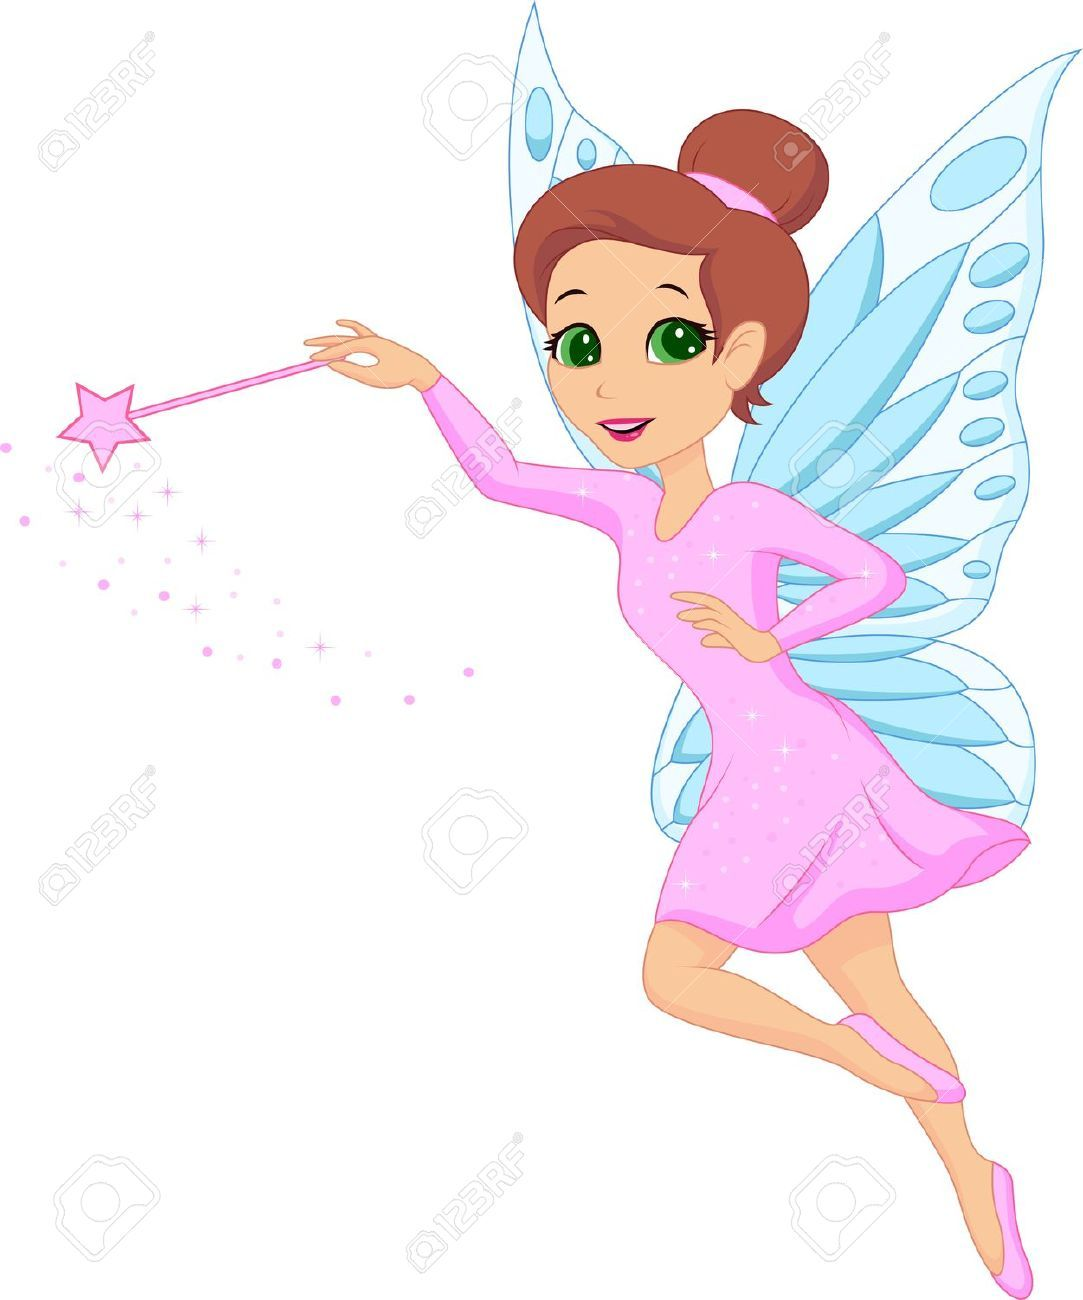 Wall Murals For Baby Rooms Cartoon Fairy Images Stock Pictures Royalty Free Cartoon